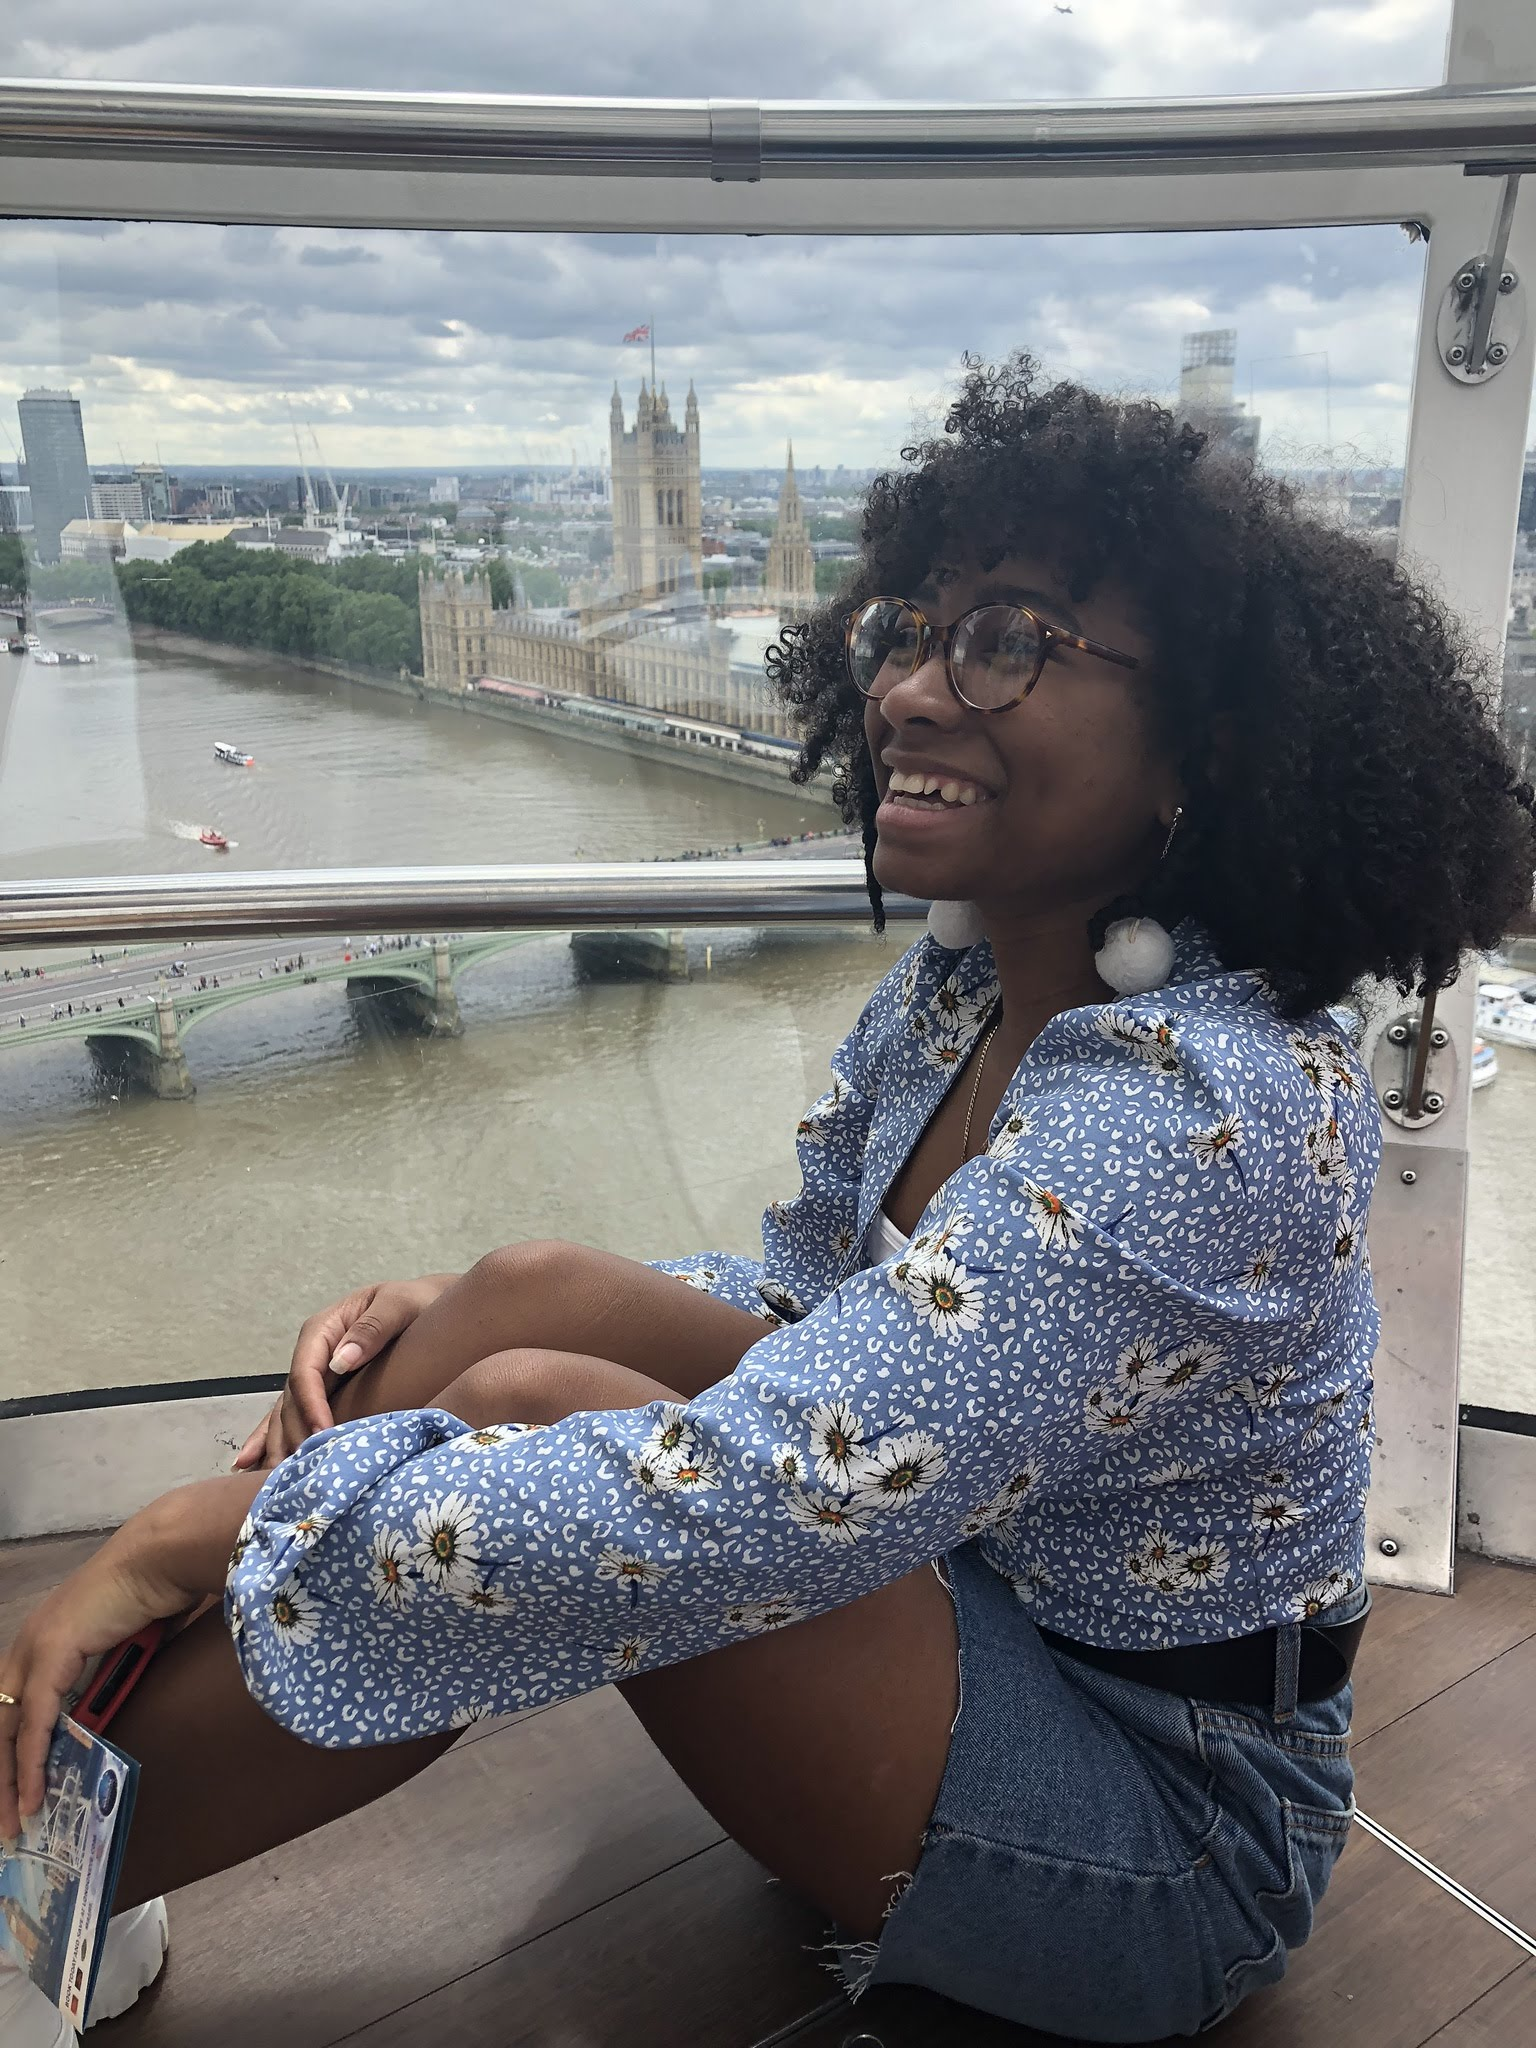 Makayla Nicholas in the London Eye with a view of Parliament and the Thames River in the background.